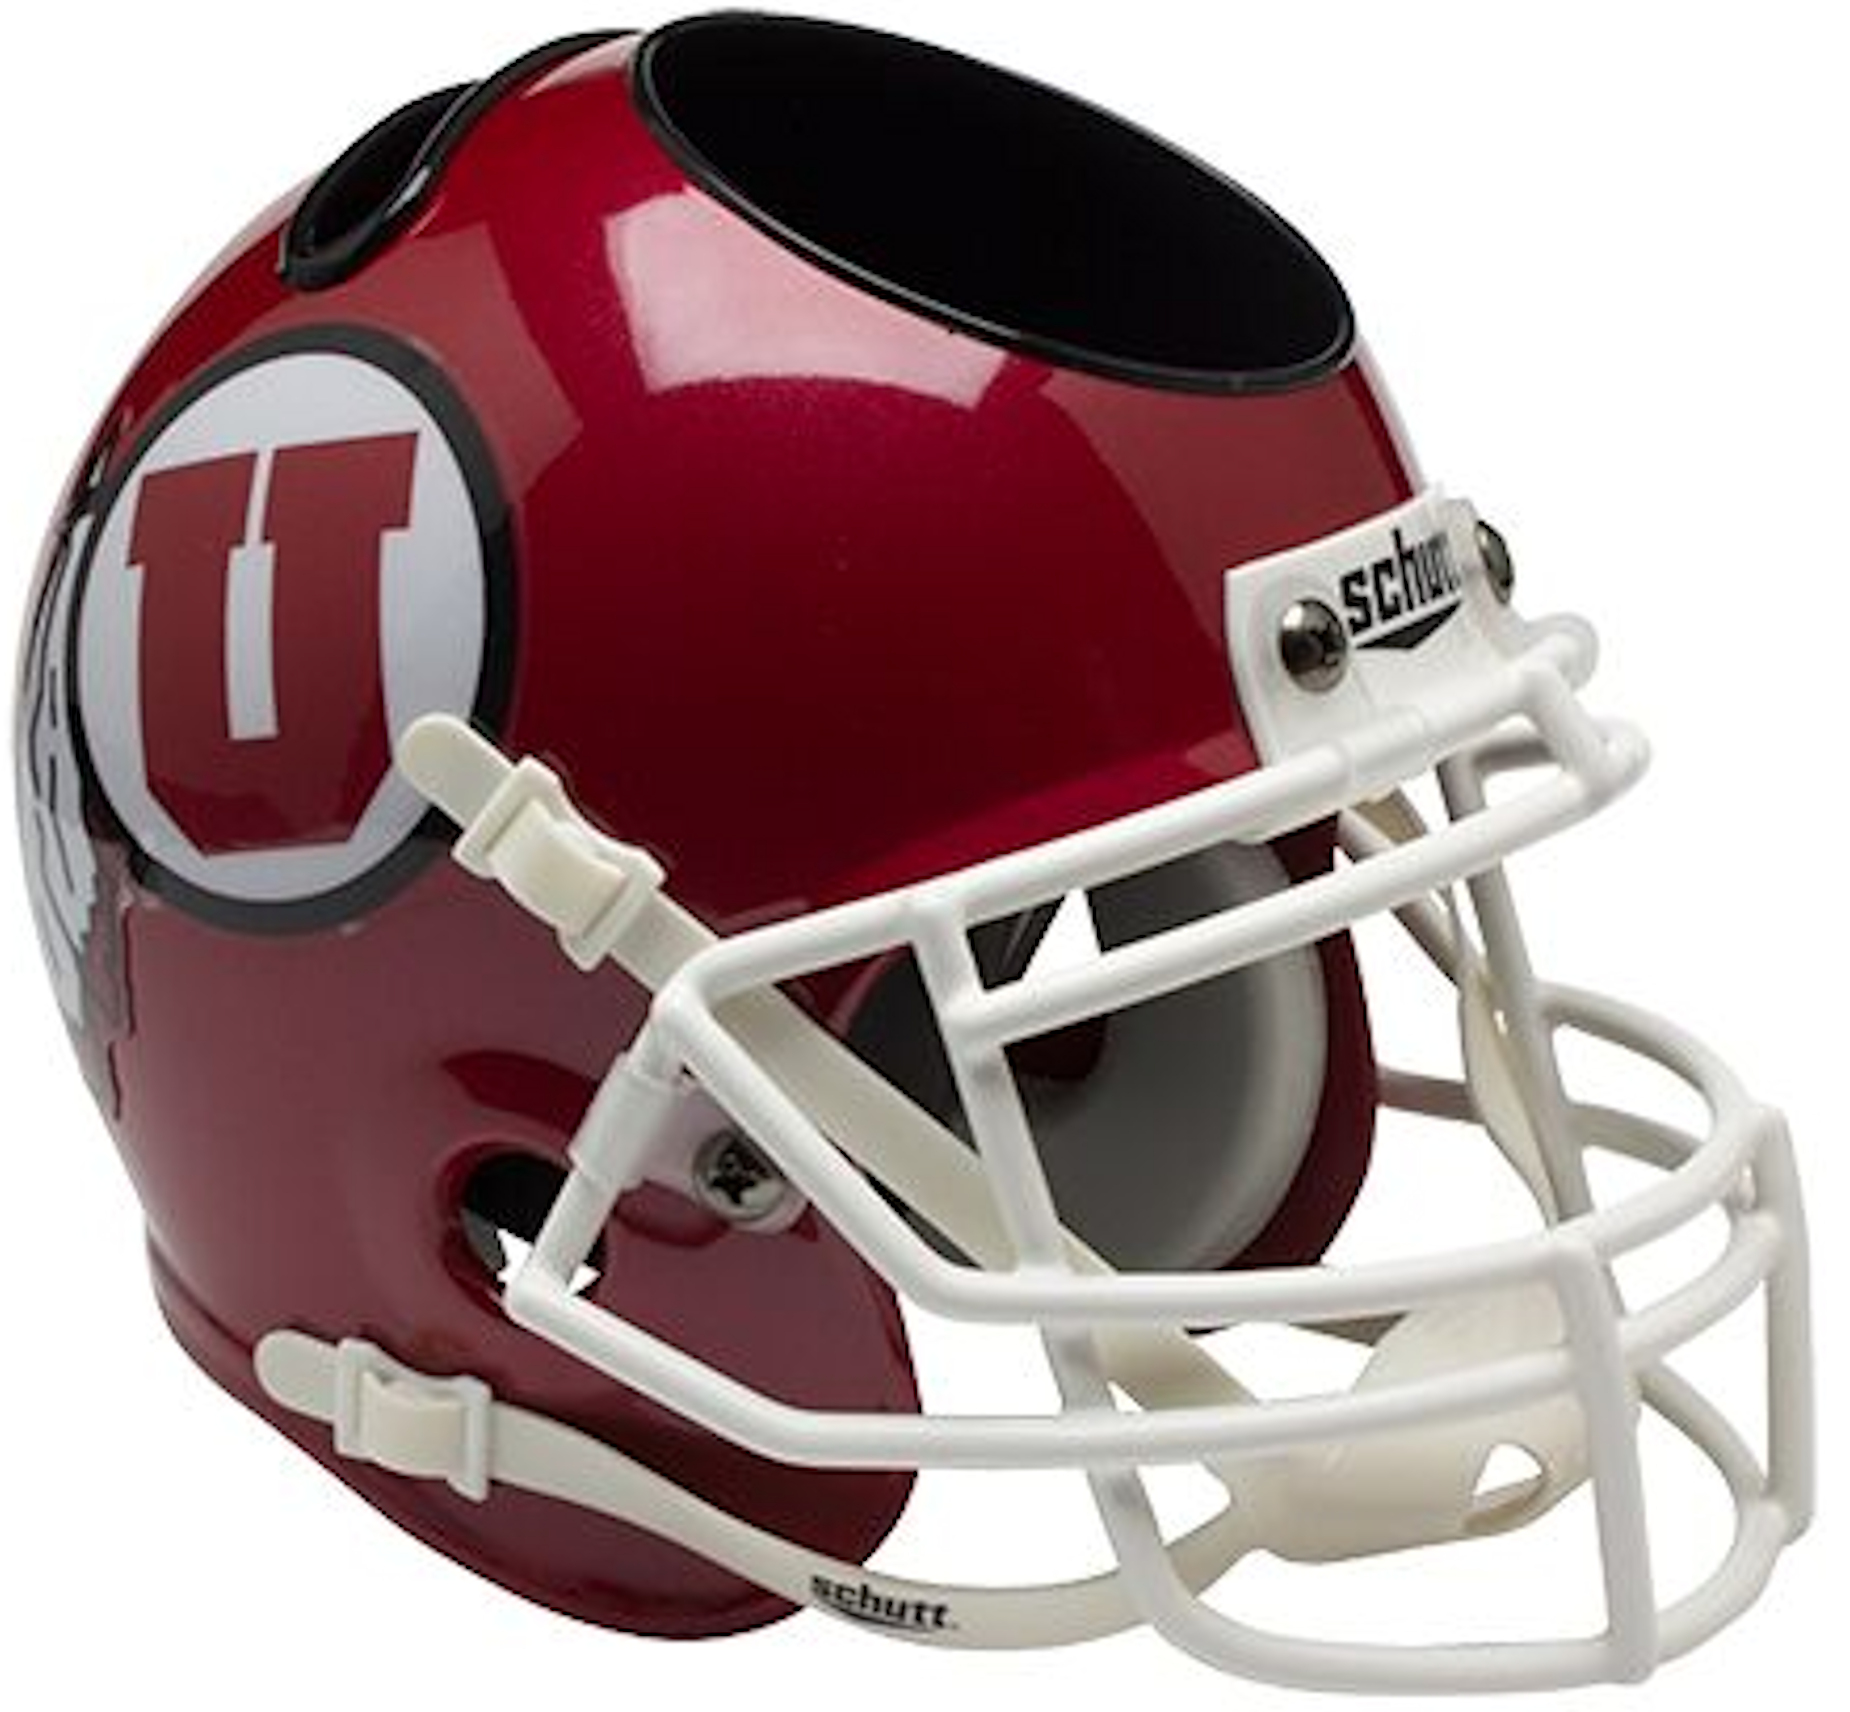 Utah Utes Miniature Football Helmet Desk Caddy